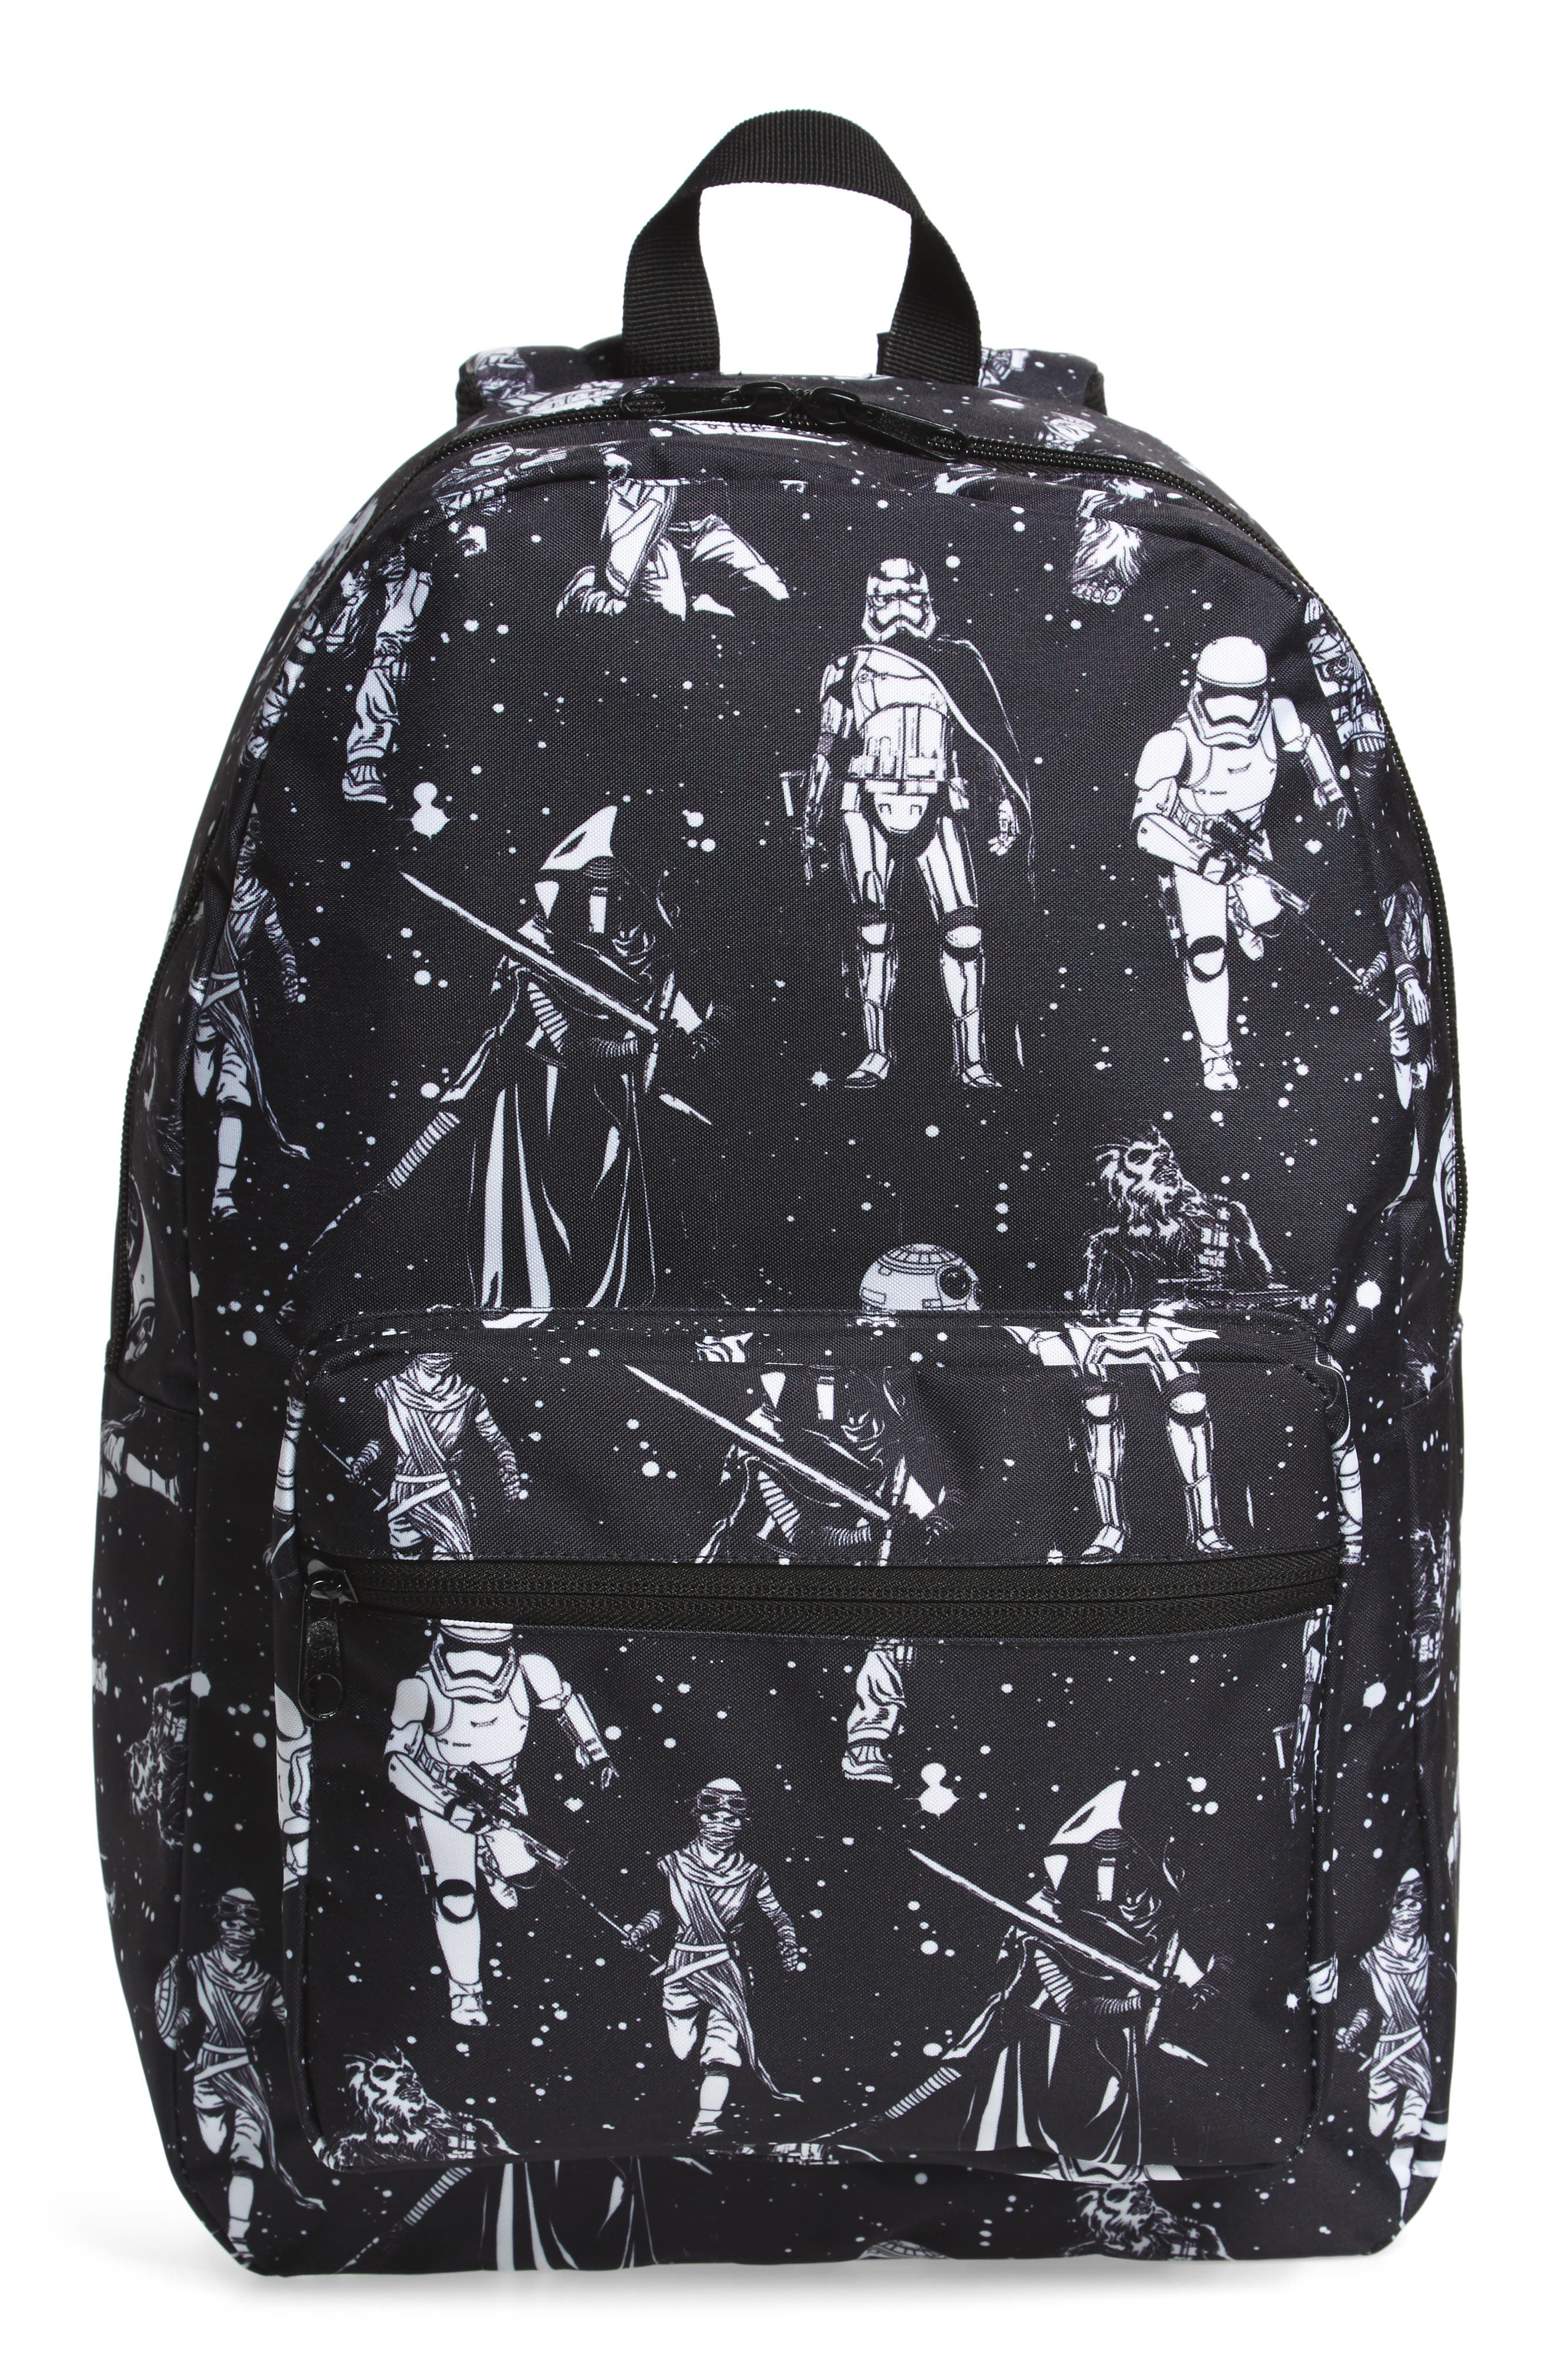 Main Image - Star Wars The Force Awakens Black & White Space Backpack (Kids)